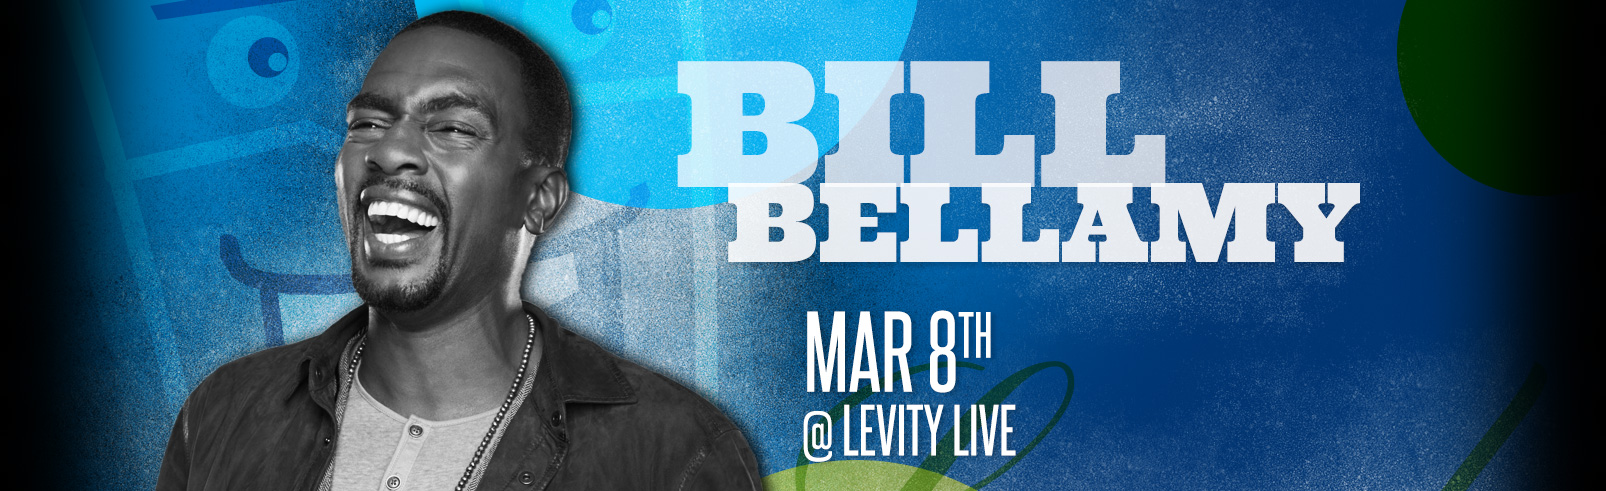 Bill Bellamy @ Levity Live